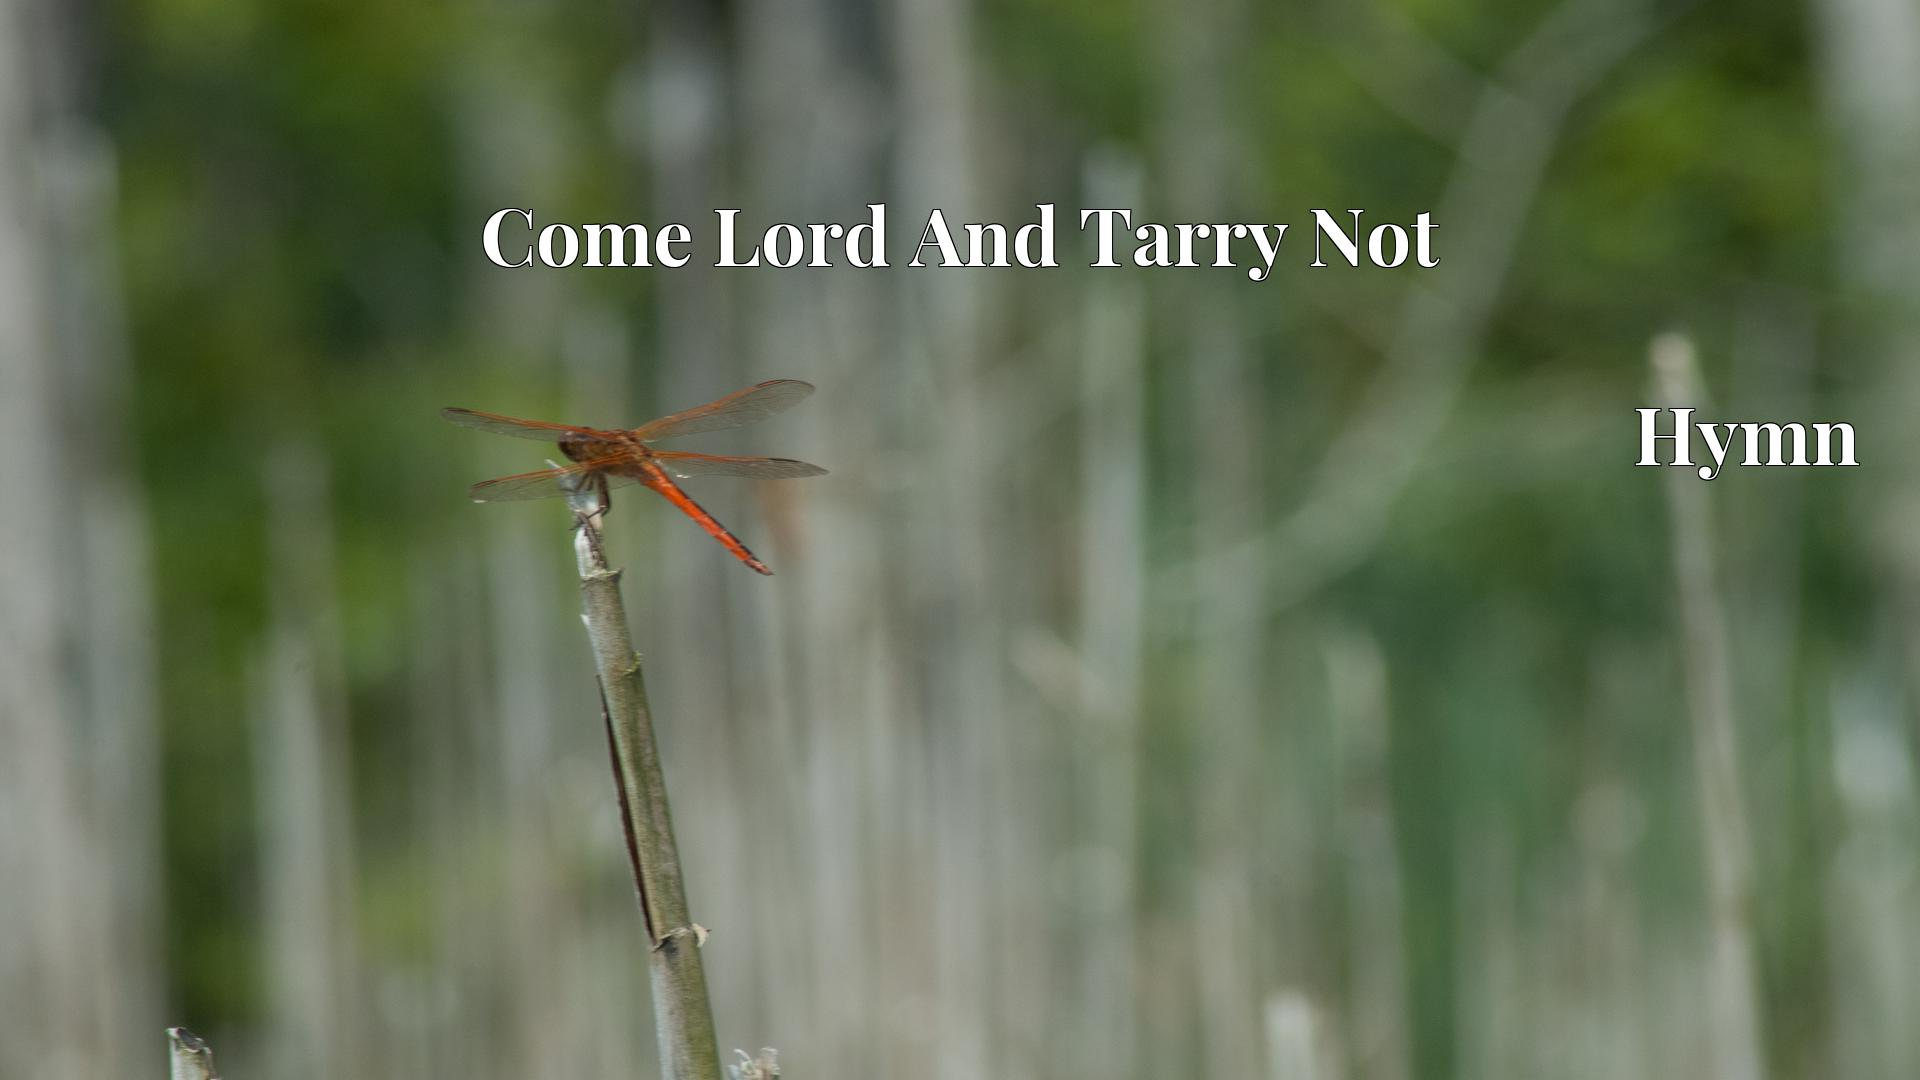 Come Lord And Tarry Not - Hymn